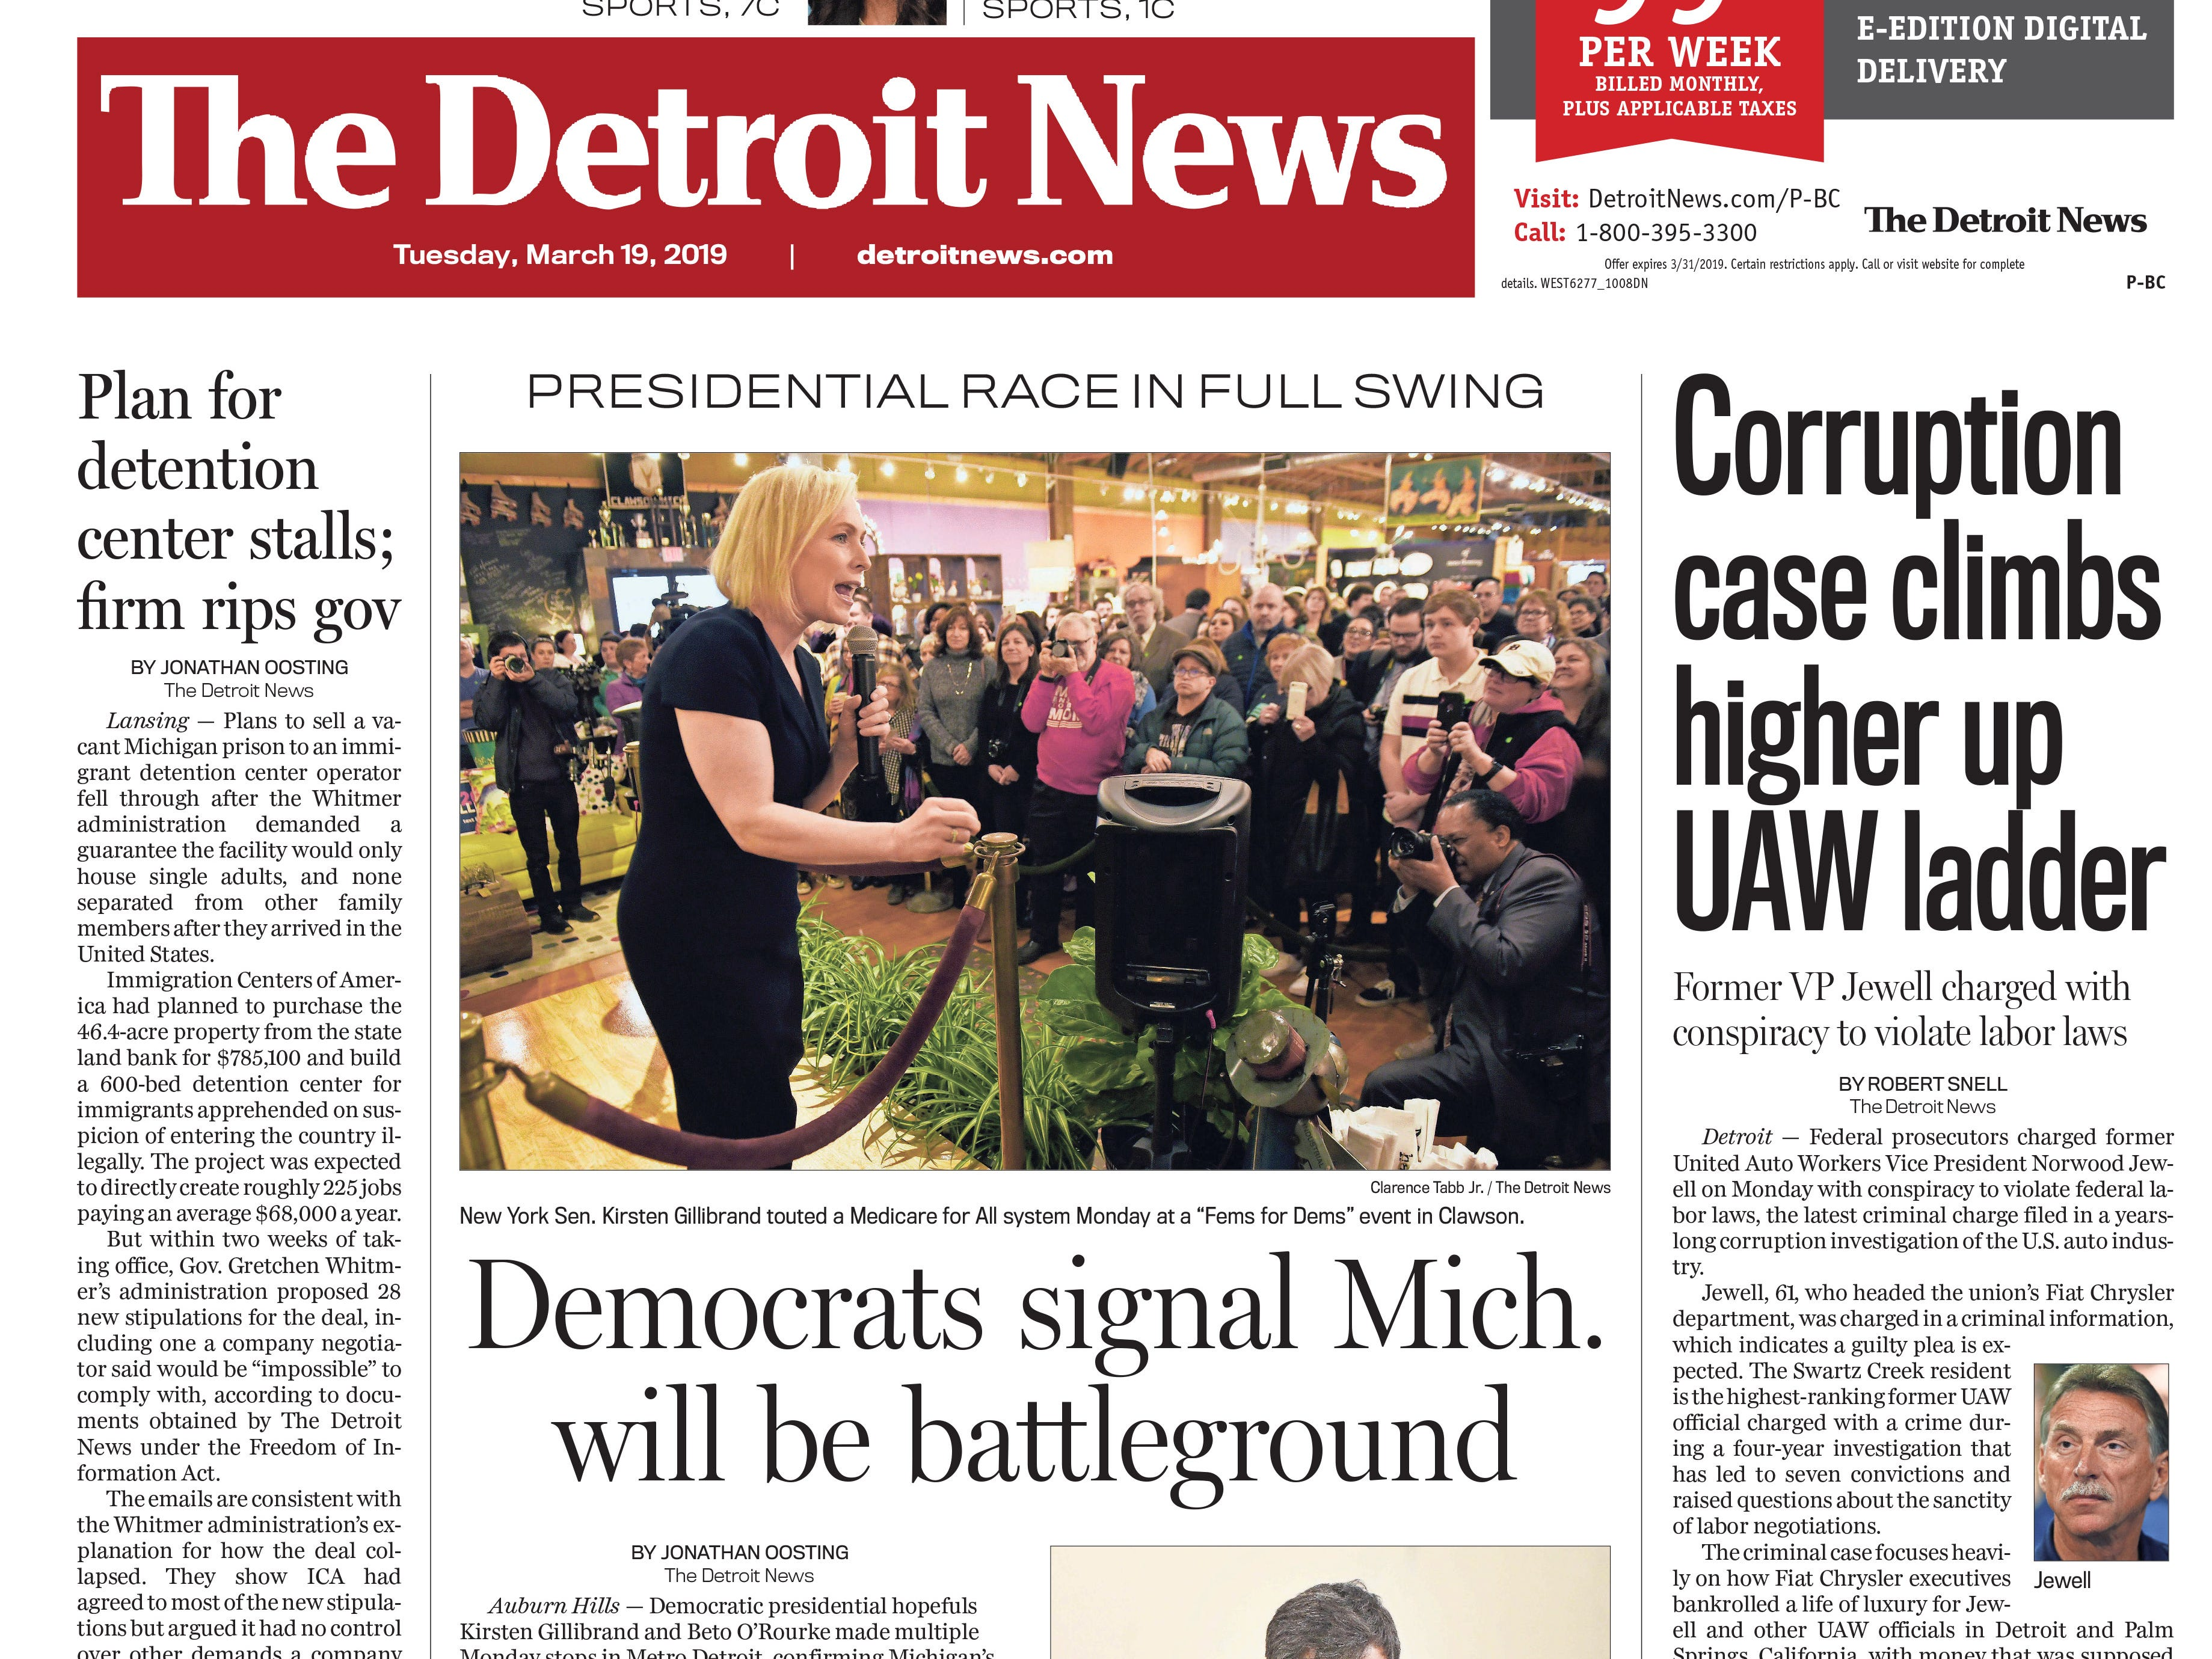 The front page of the Detroit News on Tuesday, March 19, 2019.